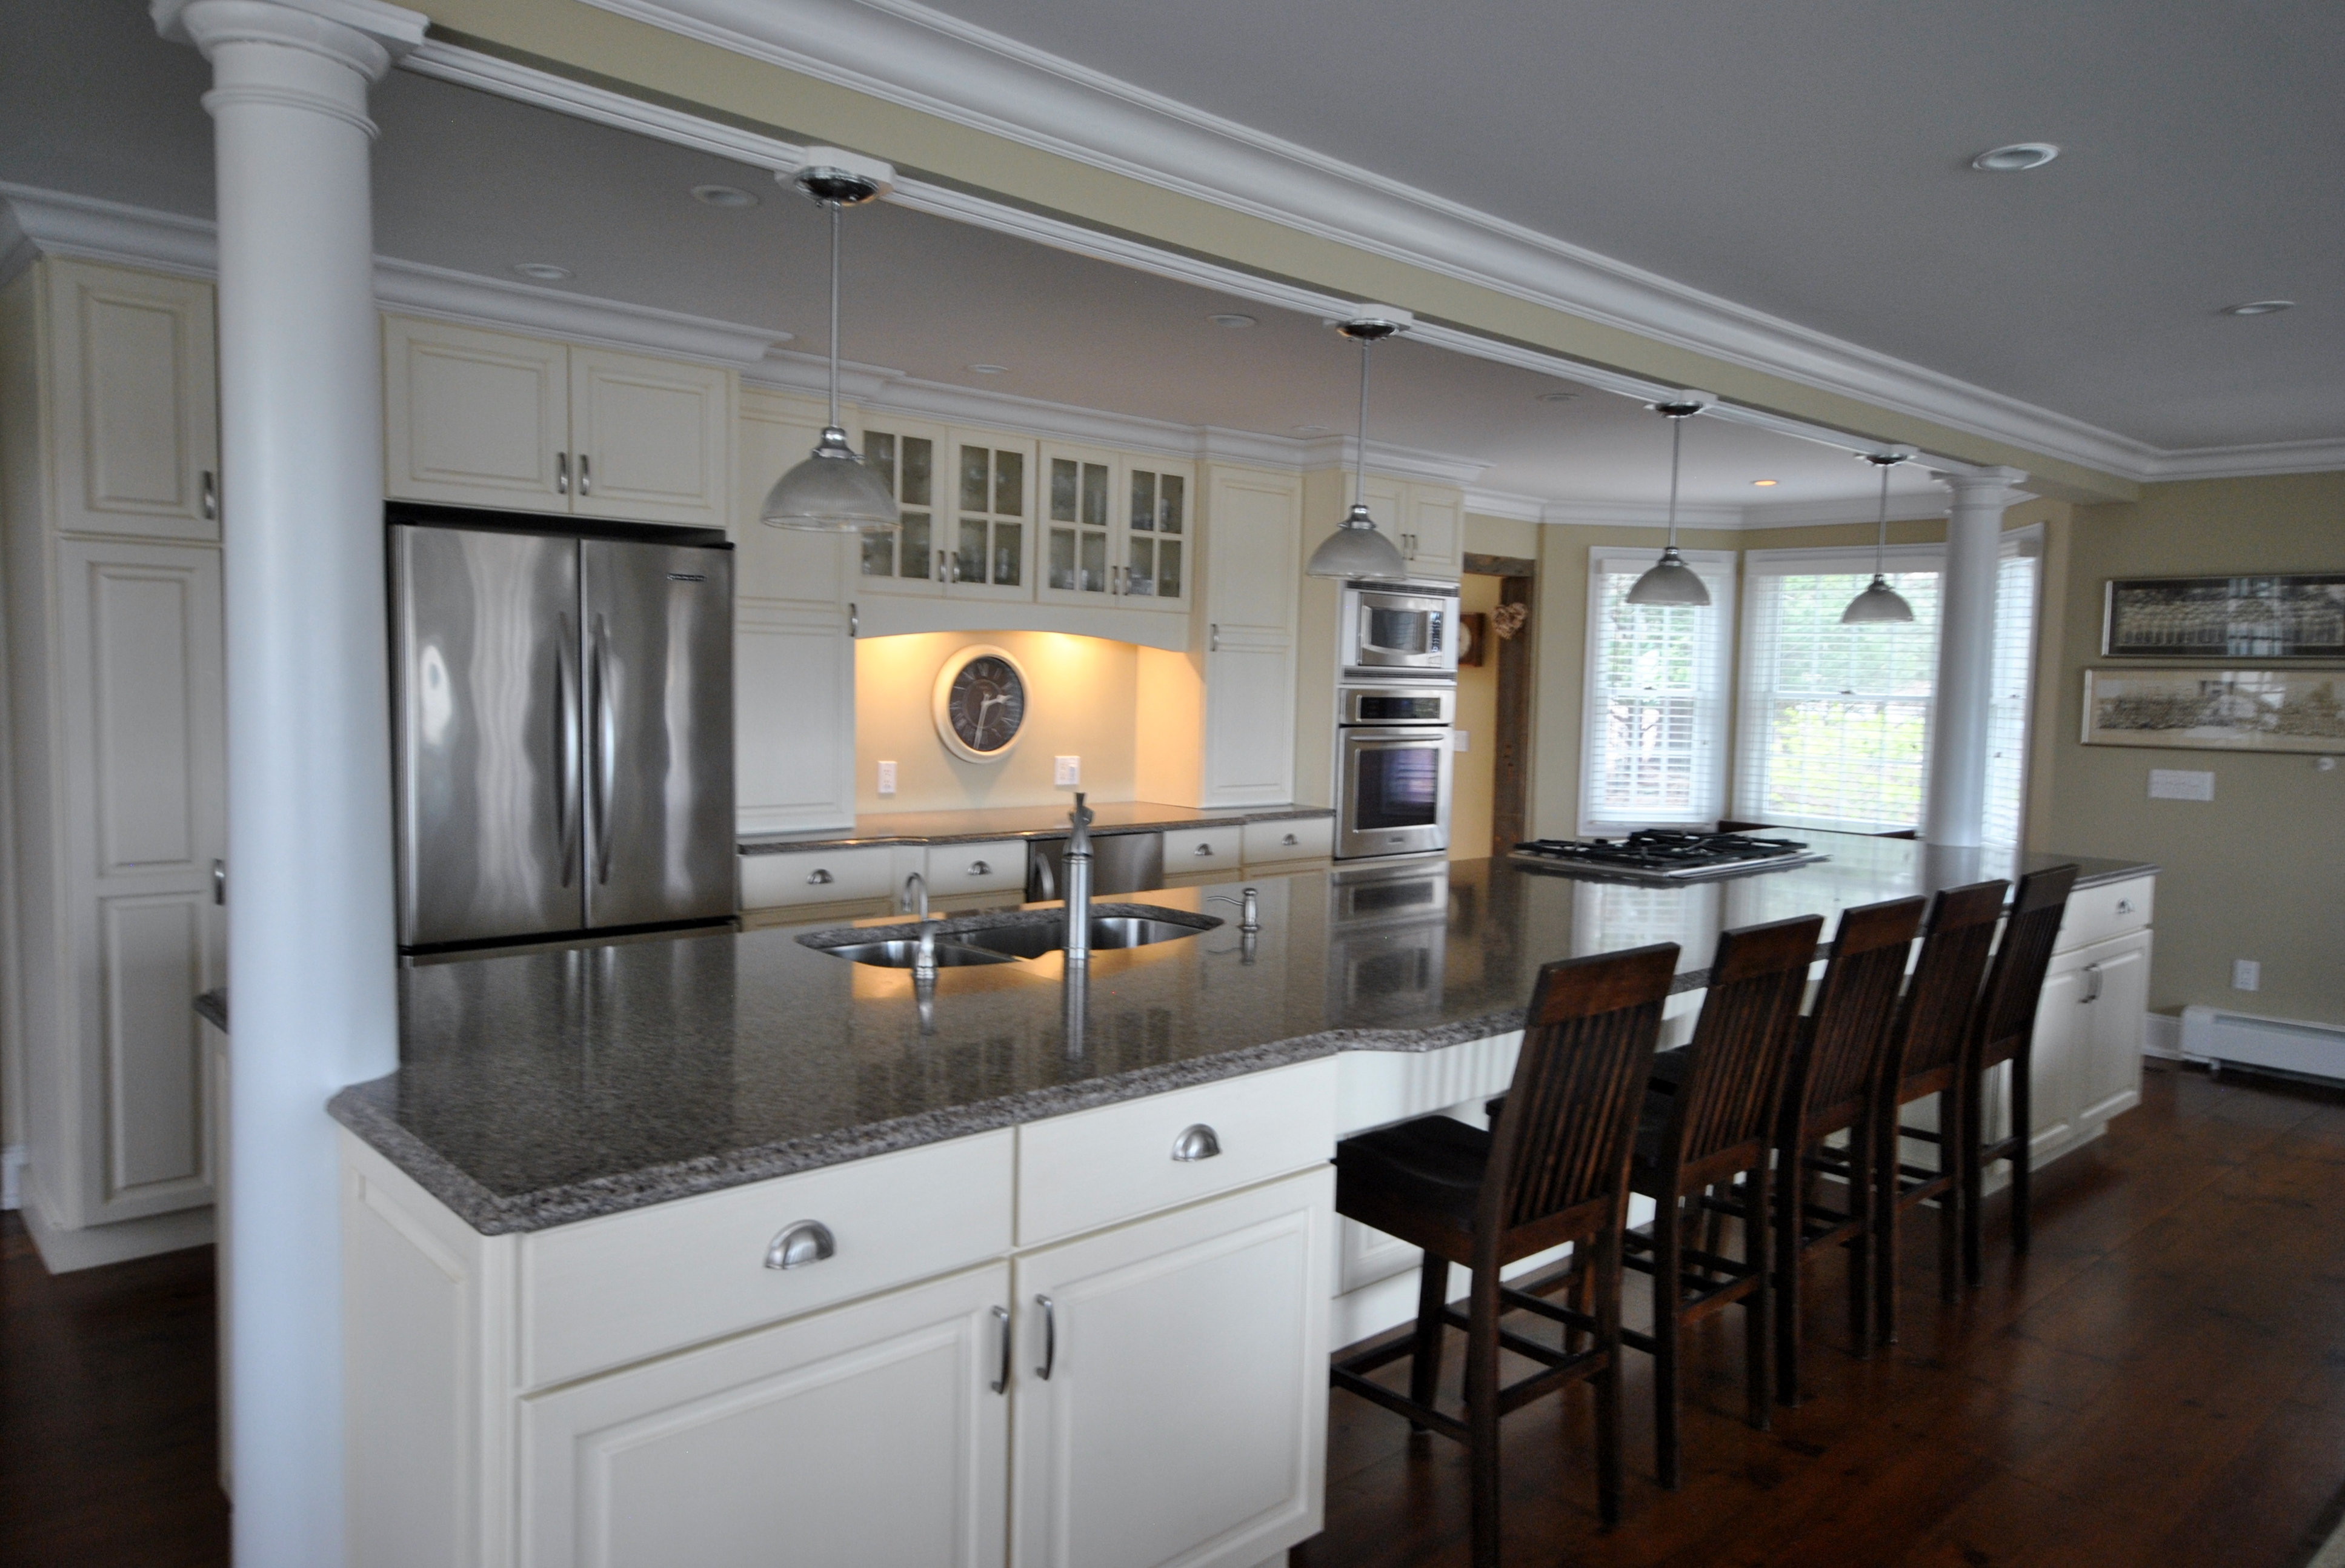 Single Family Home for Sale at Nantucket 96 Old Field Rd Setauket, New York, 11733 United States